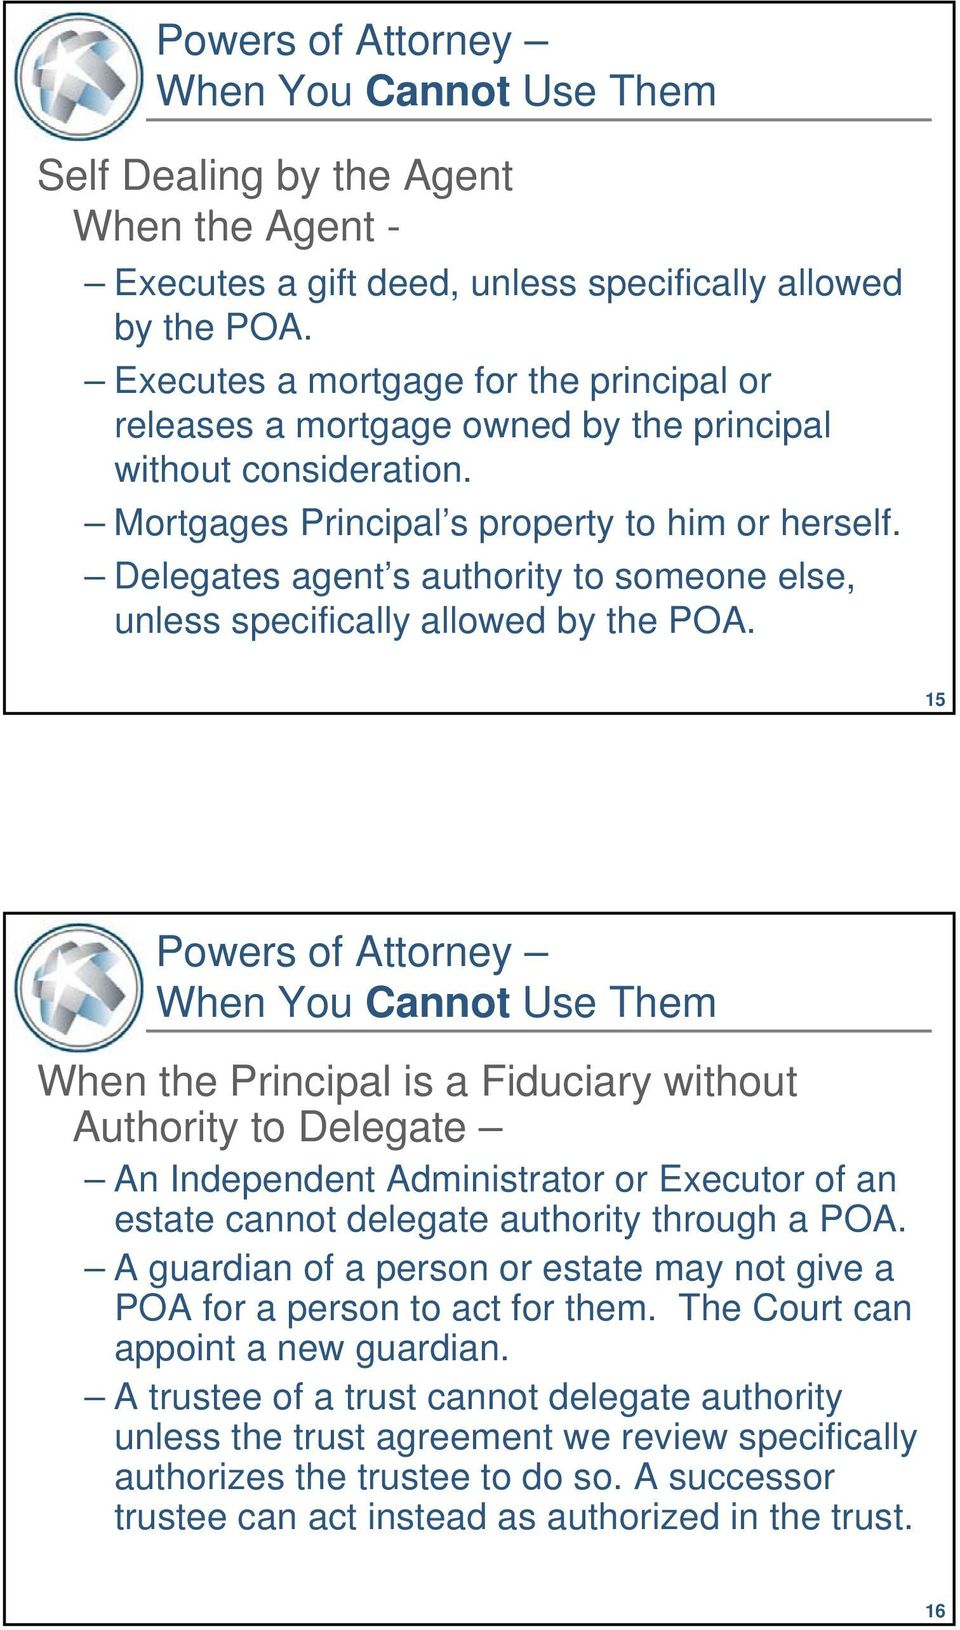 Delegates agent s authority to someone else, unless specifically allowed by the POA.